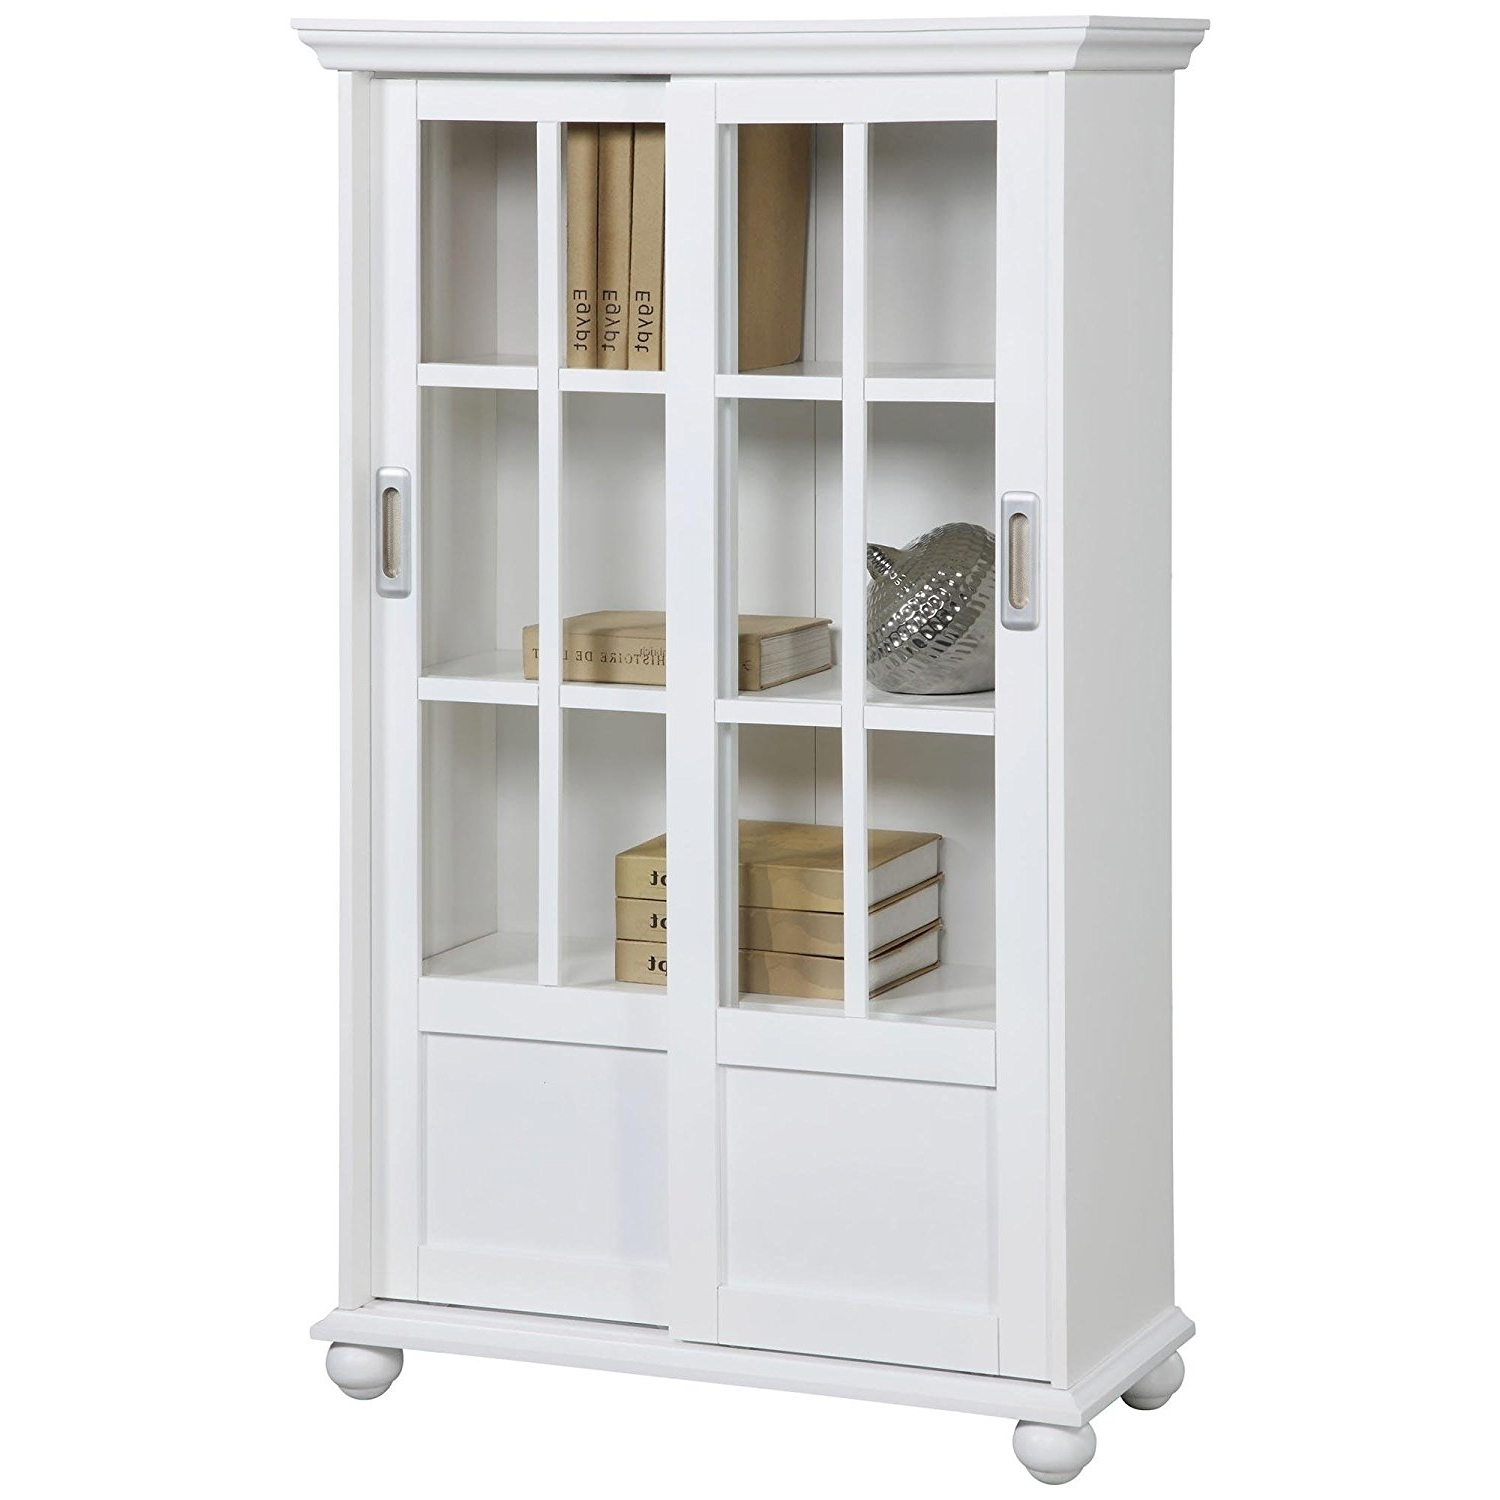 White Bookcases With Doors With Regard To Recent Amazon: Ameriwood Home Aaron Lane Bookcase With Sliding Glass (View 14 of 15)